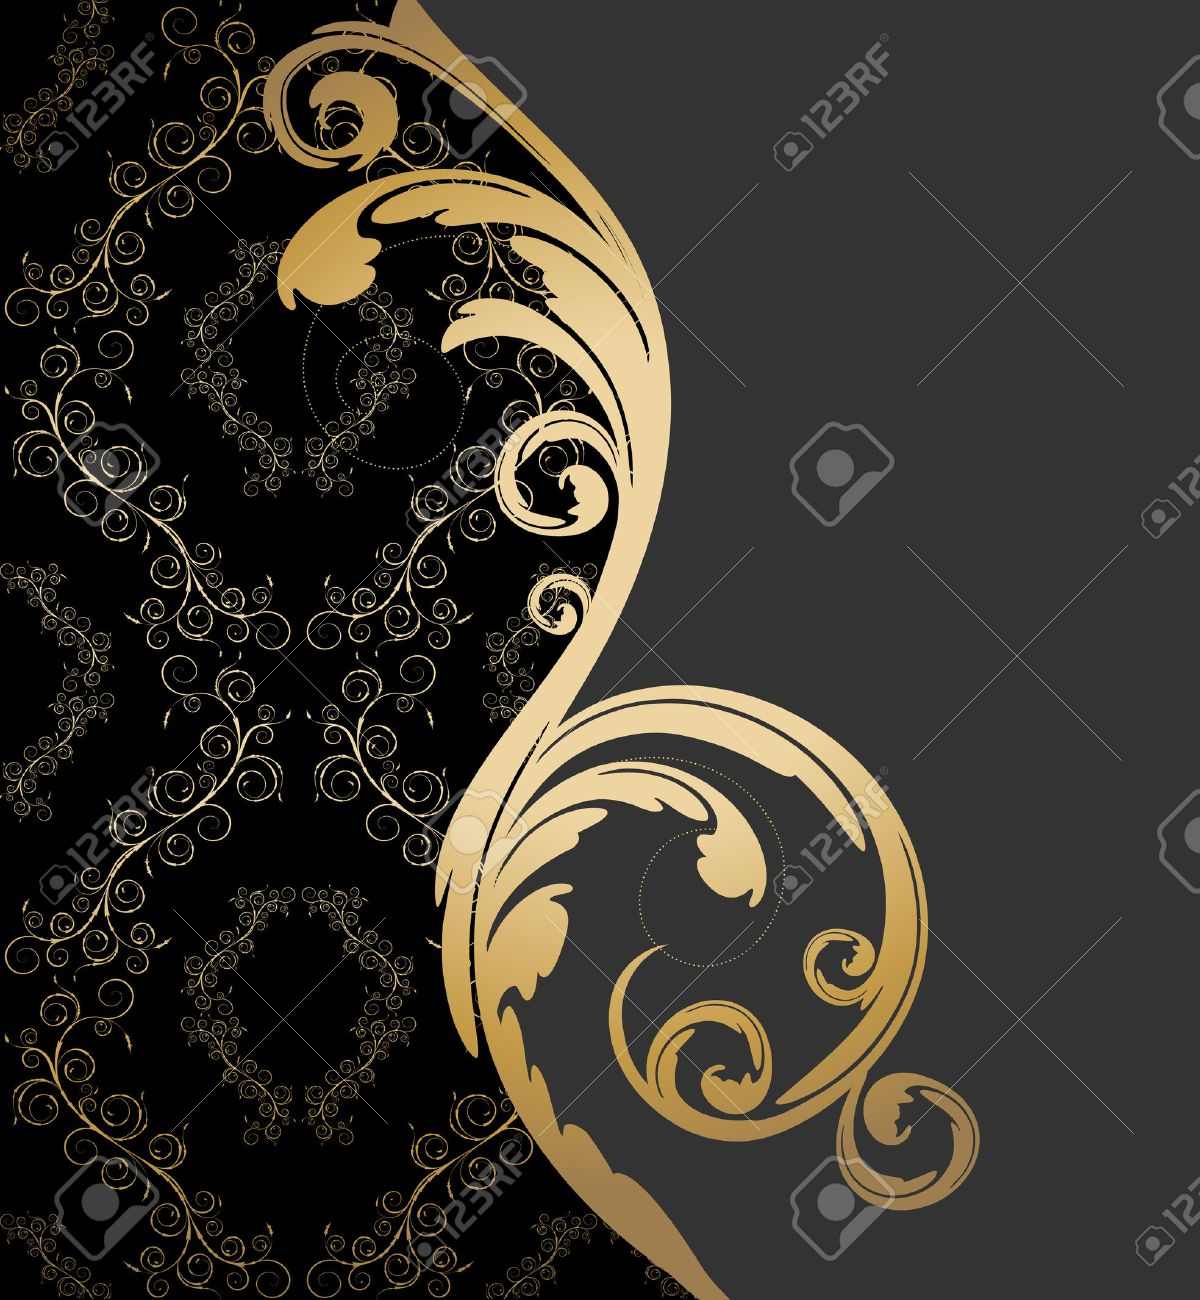 Vector black, gray and gold background with floral wave and ornament - 8423117